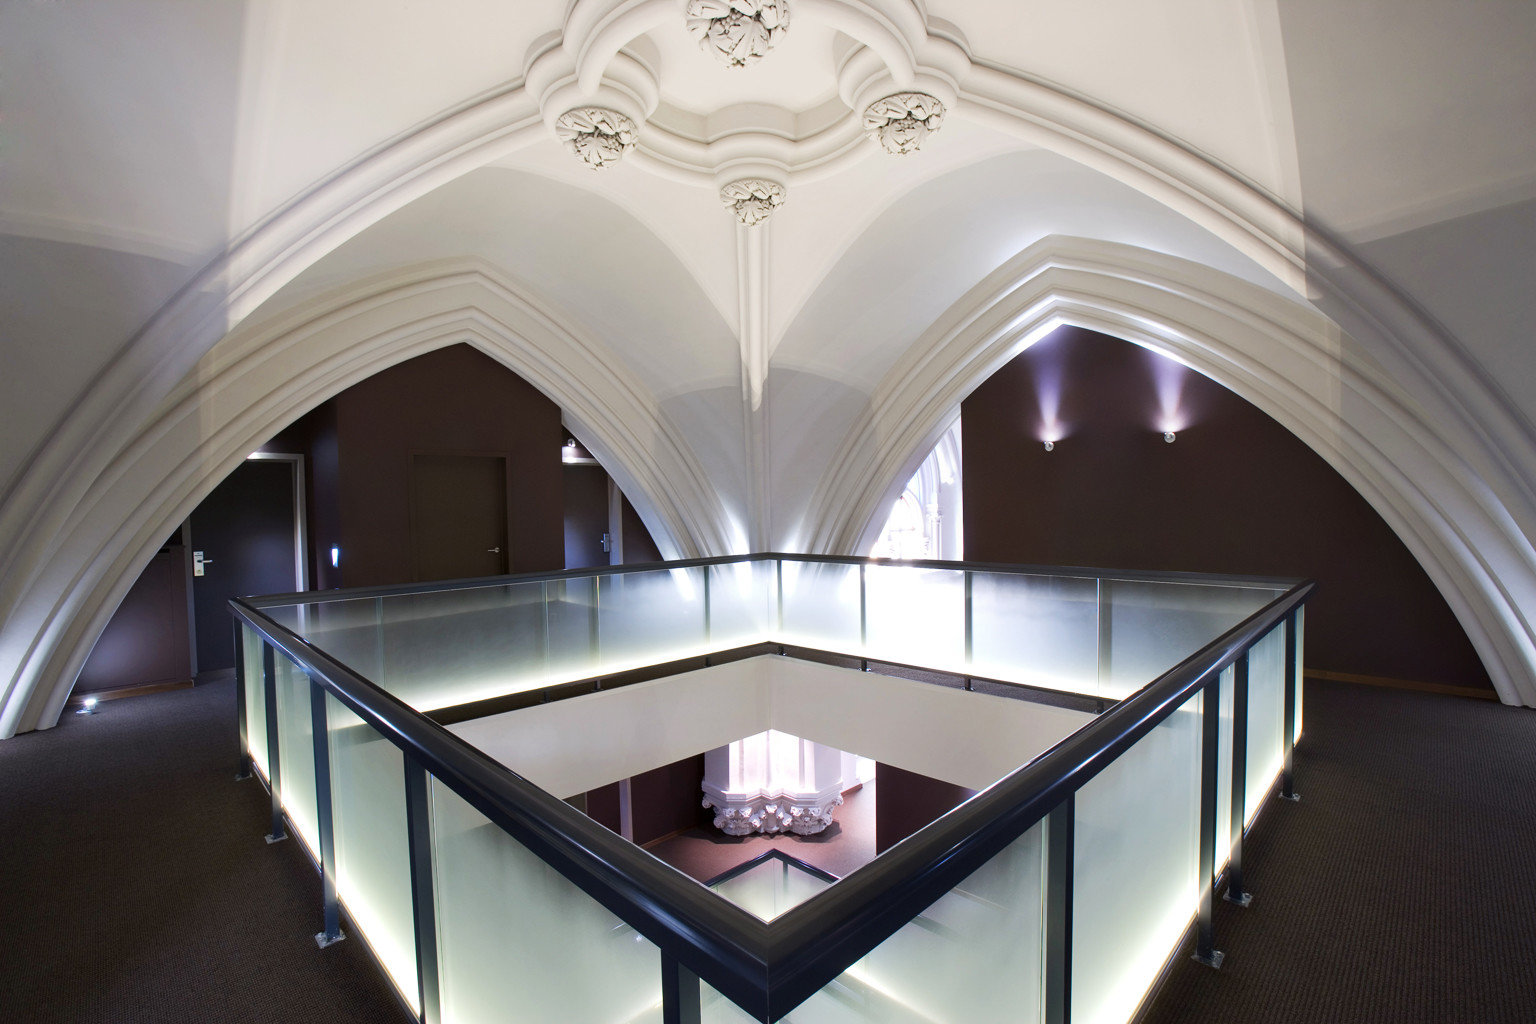 City Cultural Historic Lobby building Architecture house light daylighting stairs arch lighting symmetry dome hall step